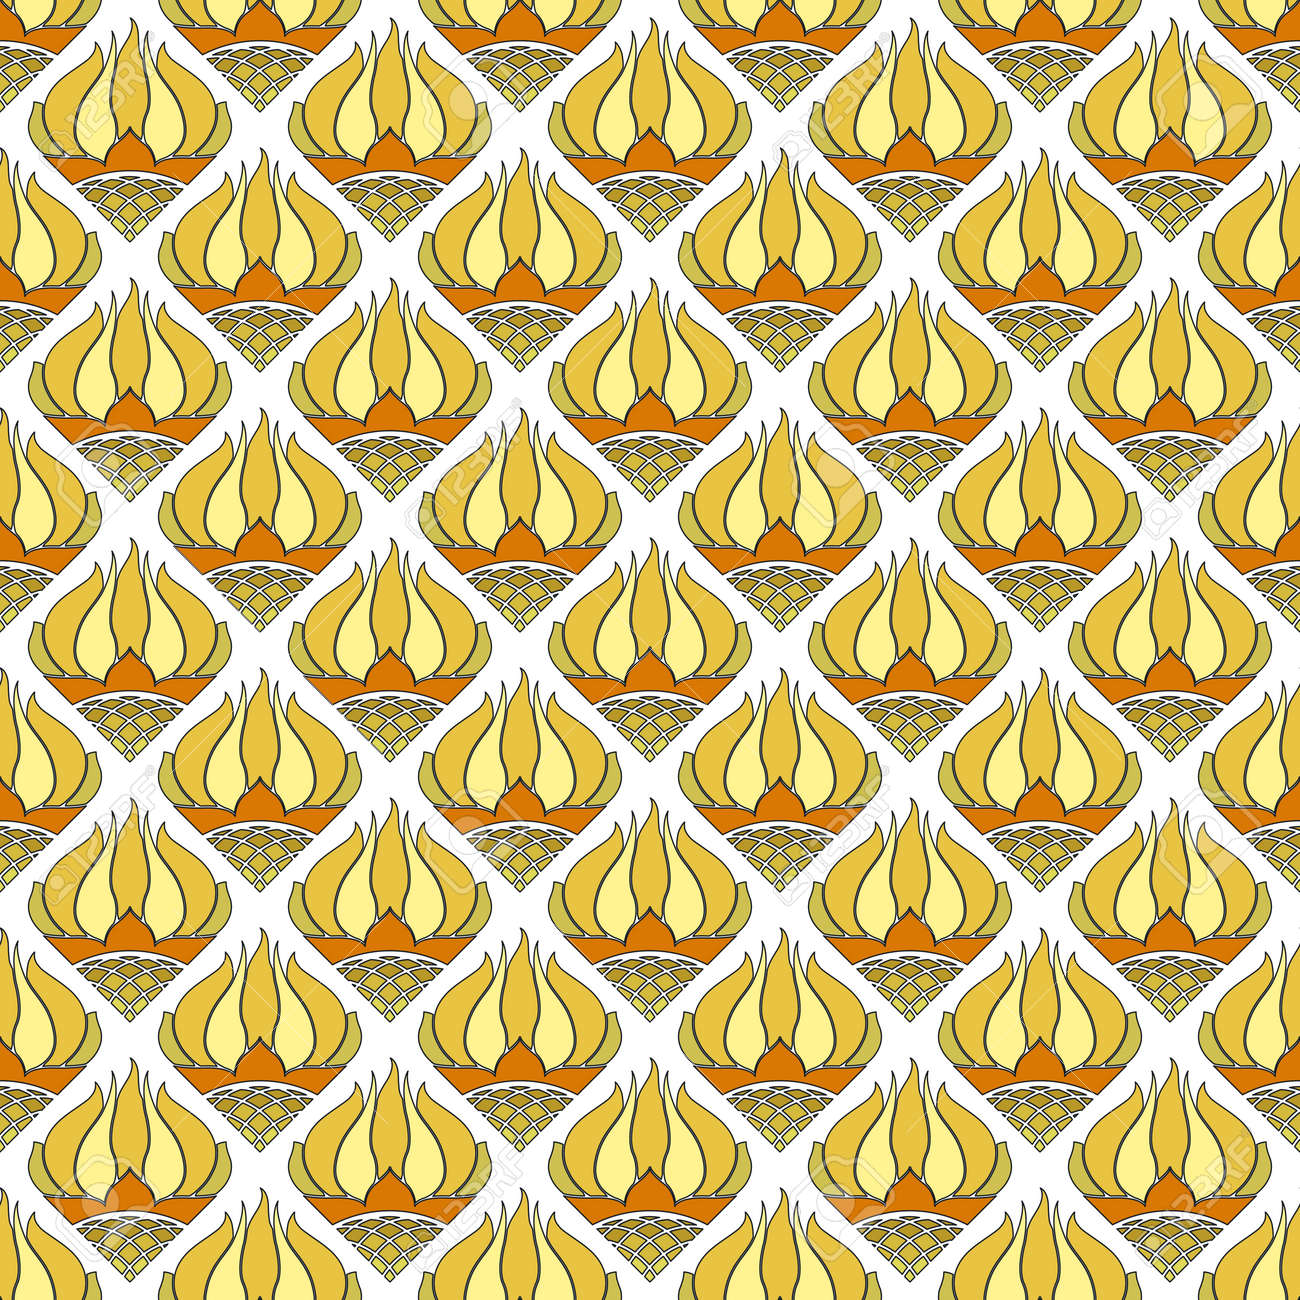 Beautiful seamless floral pattern, stylized yellow with orange sunflowers on a white background. Great for decorating fabrics, textiles, gift wrapping, printed matter, interiors, advertising. - 172047269